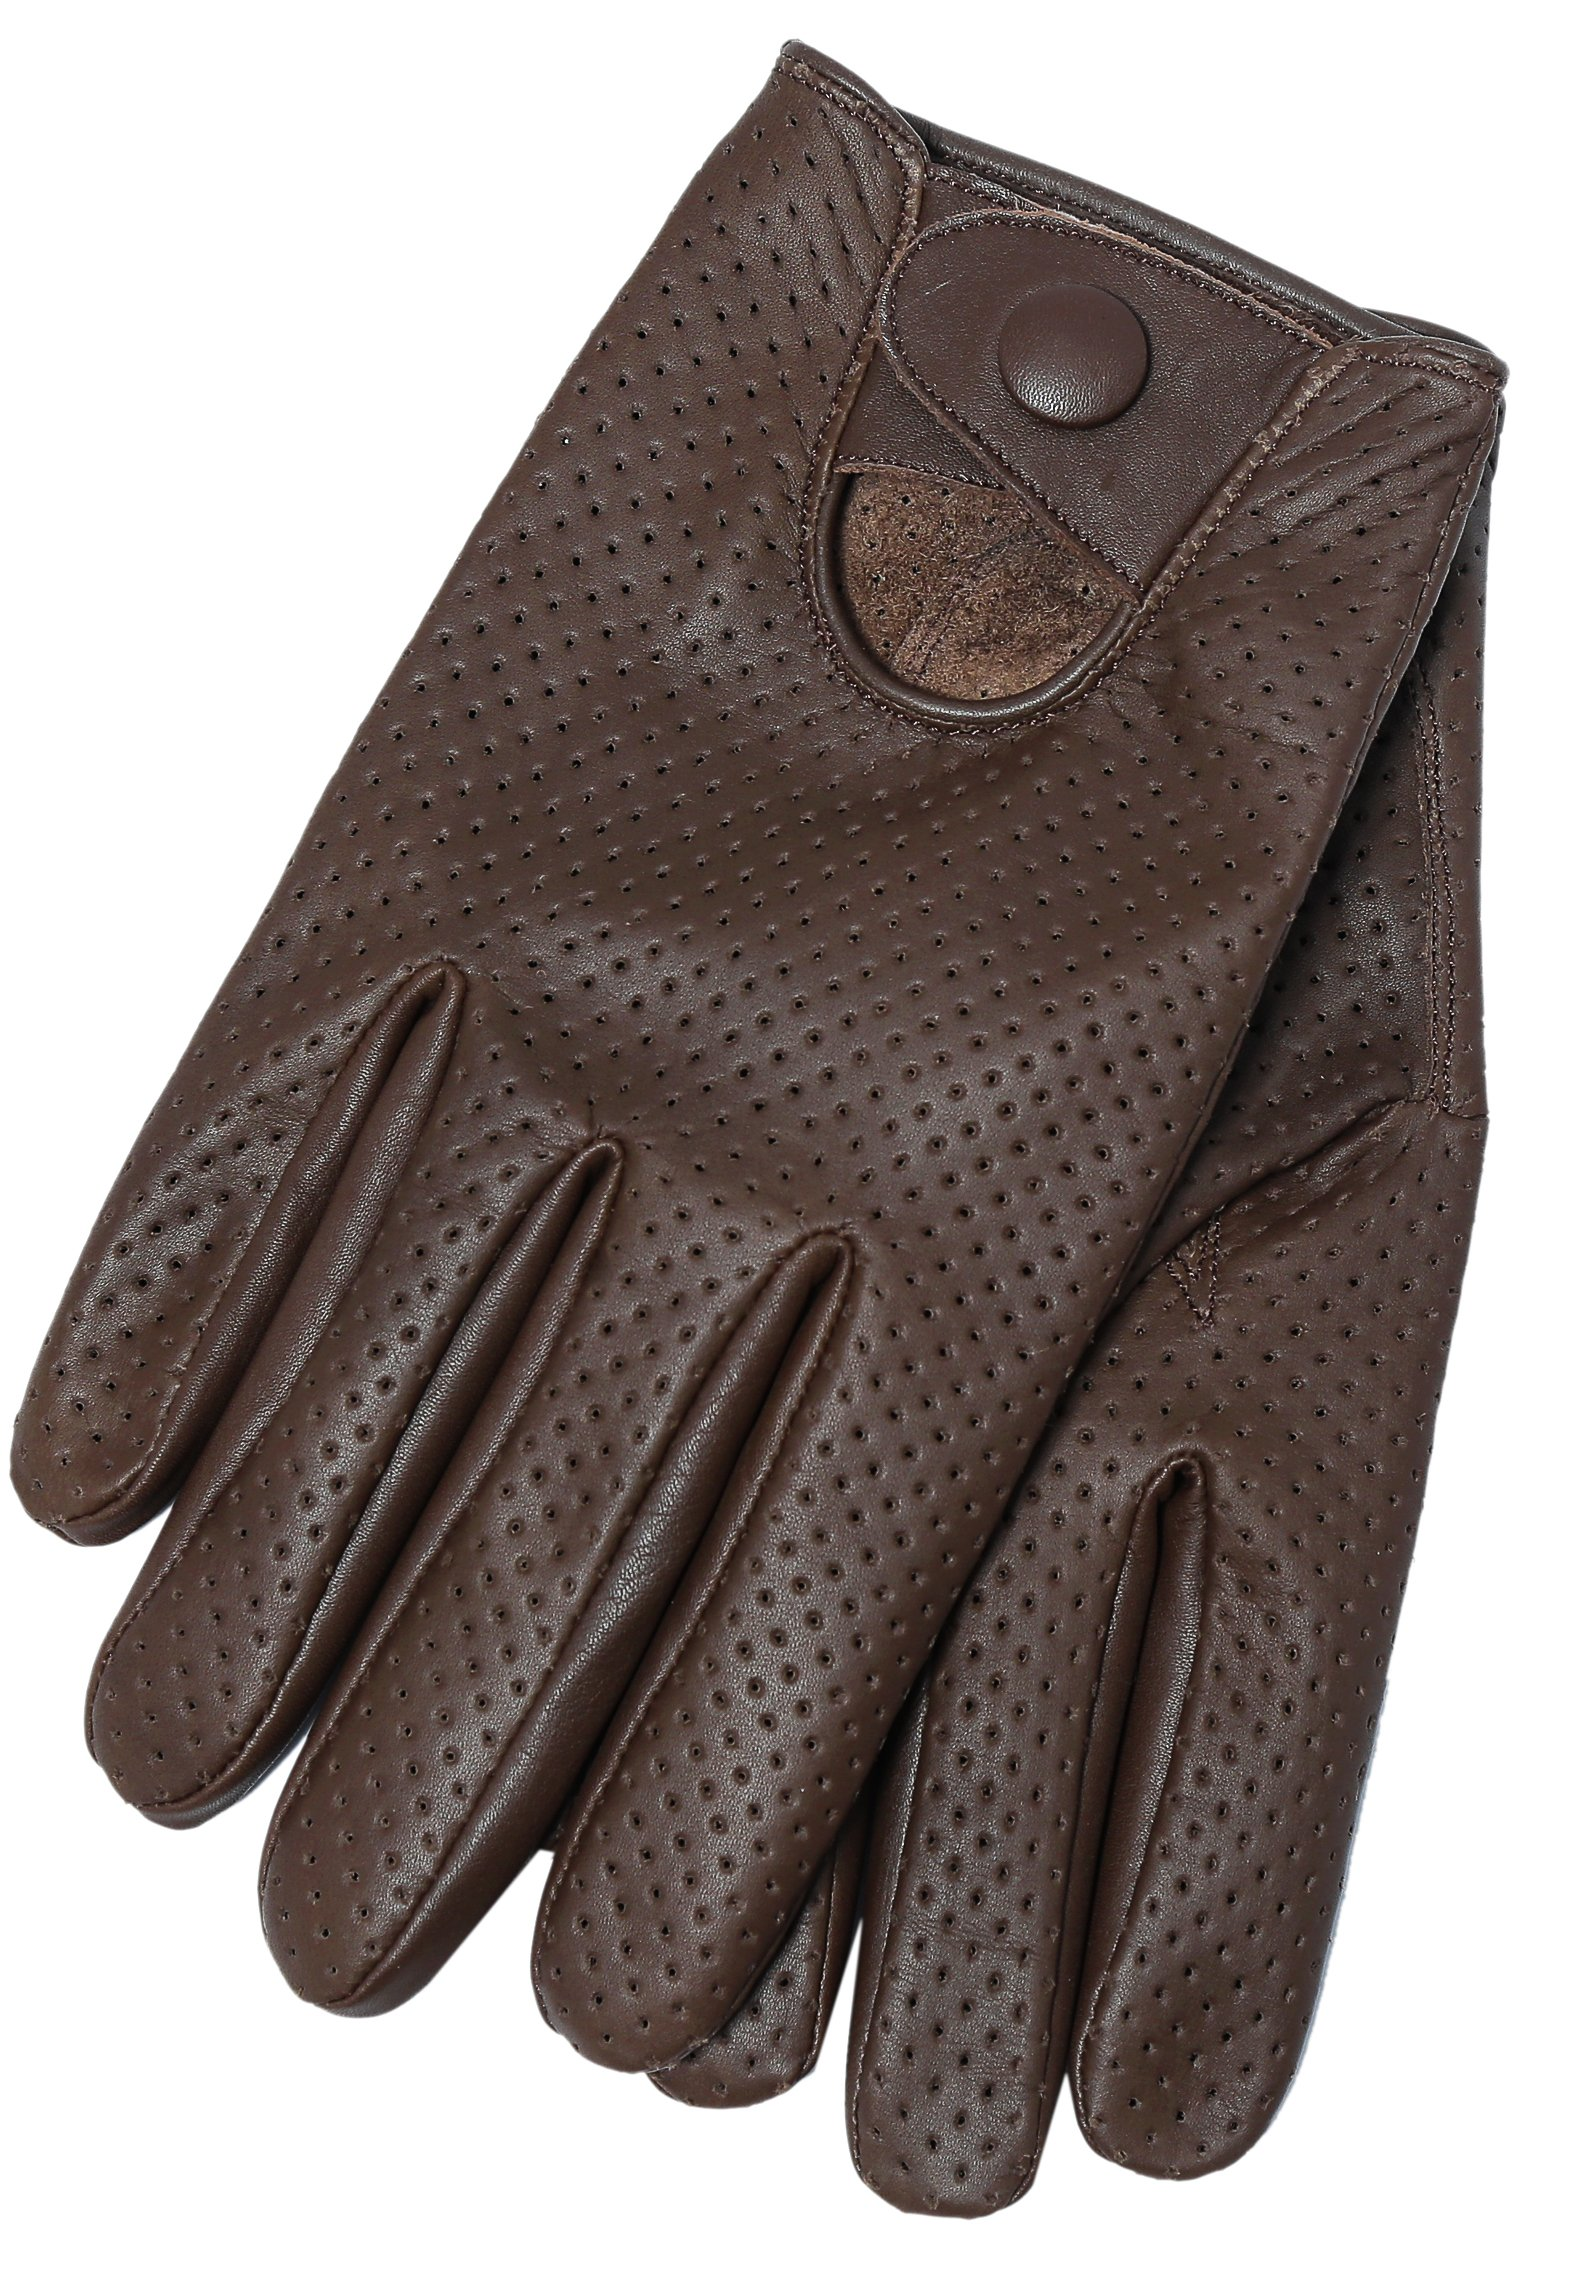 Riparo Motorsports Men's Genuine Leather Mesh Driving Gloves (Large, Dark Brown)